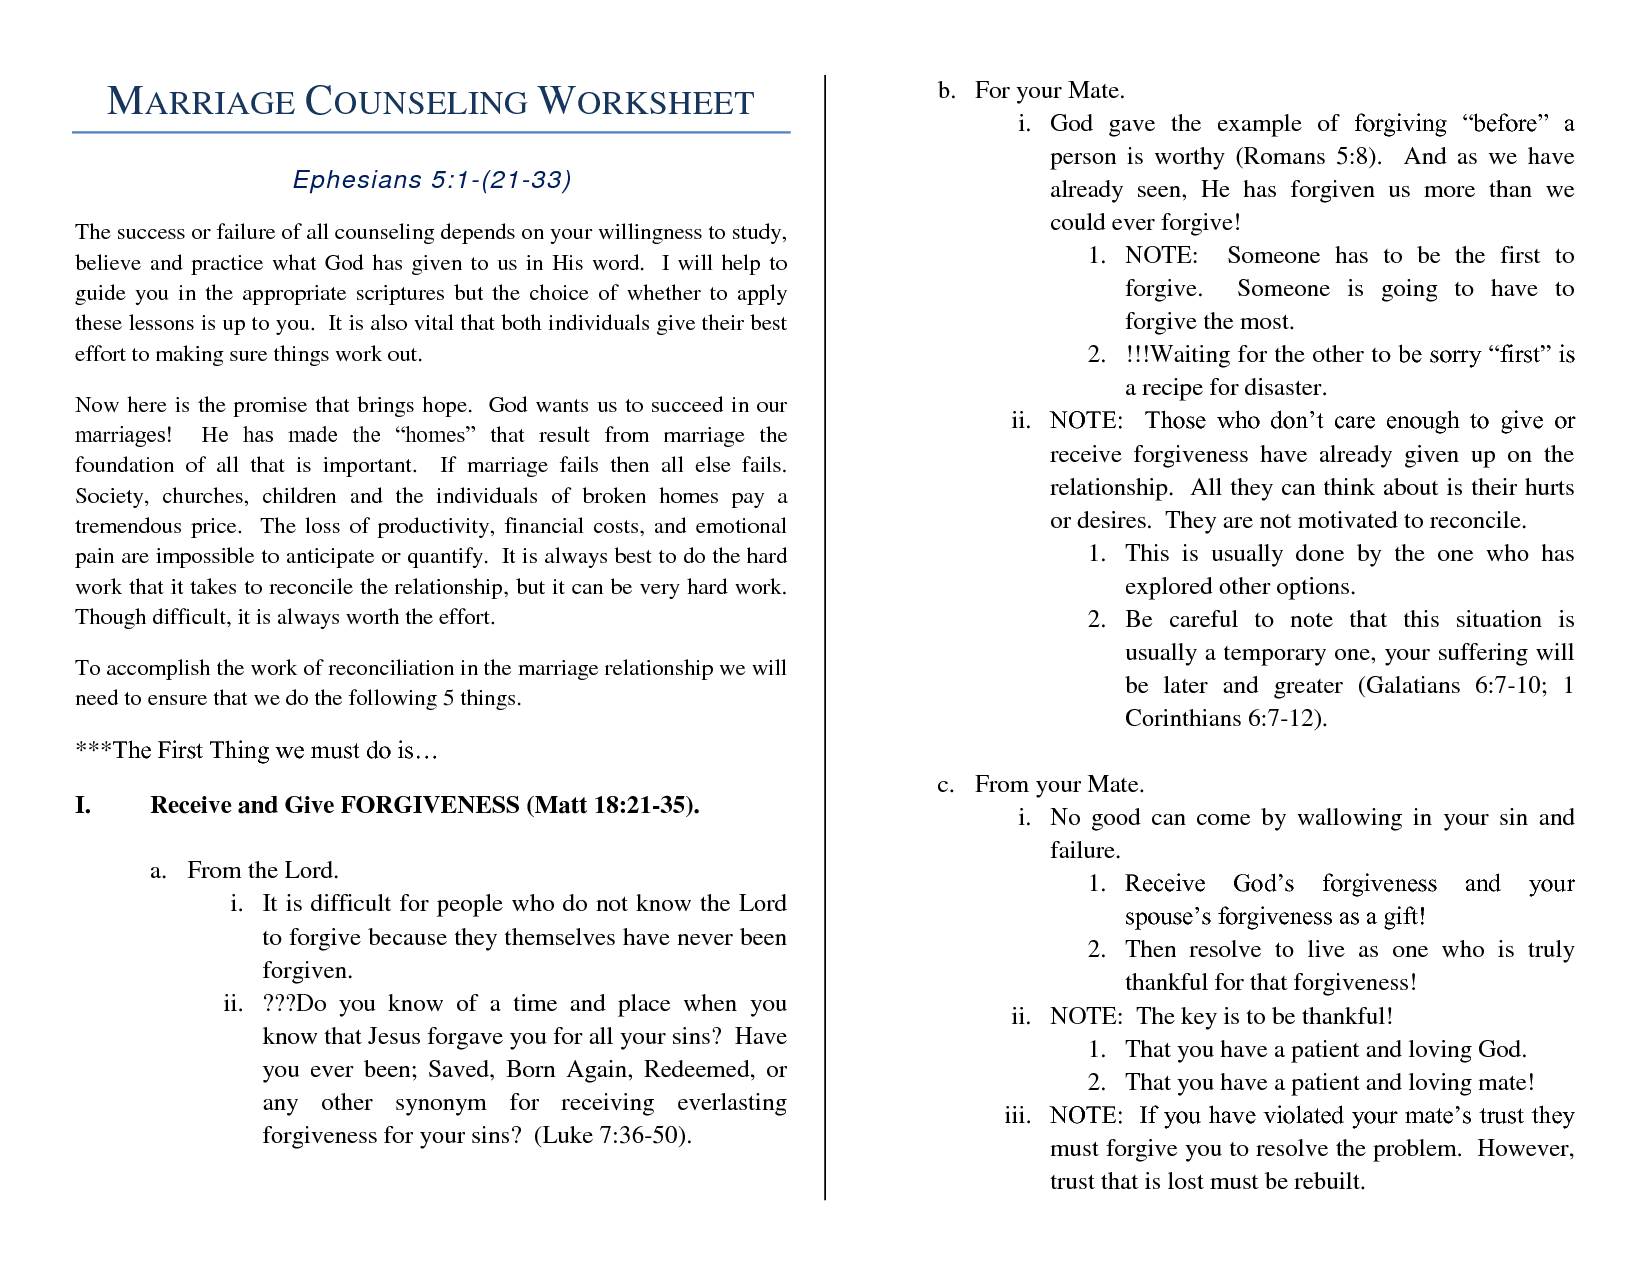 worksheet Free Marriage Counseling Worksheets marriagehelpworksheet marriage counseling worksheet couples worksheet